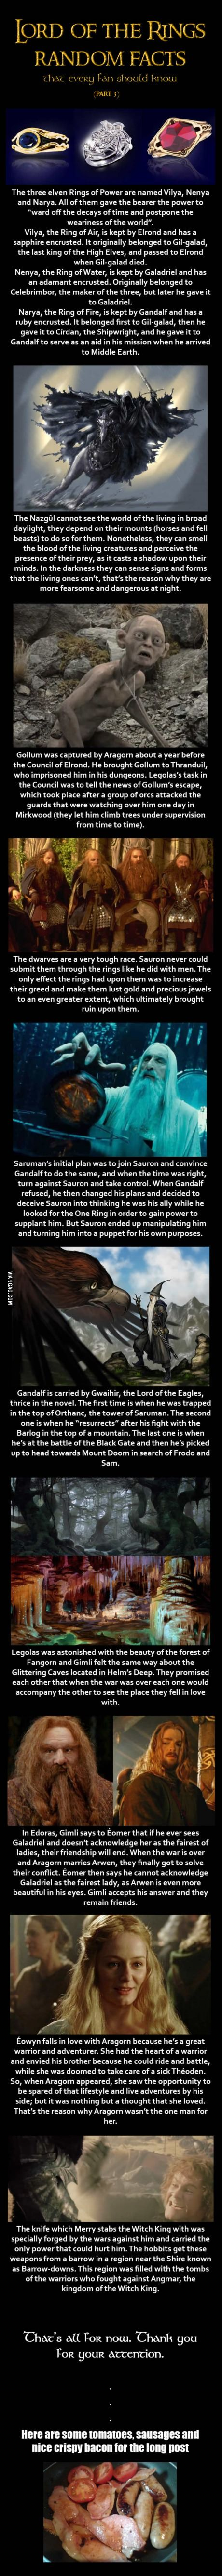 Little-known facts about The Lord of the Rings.